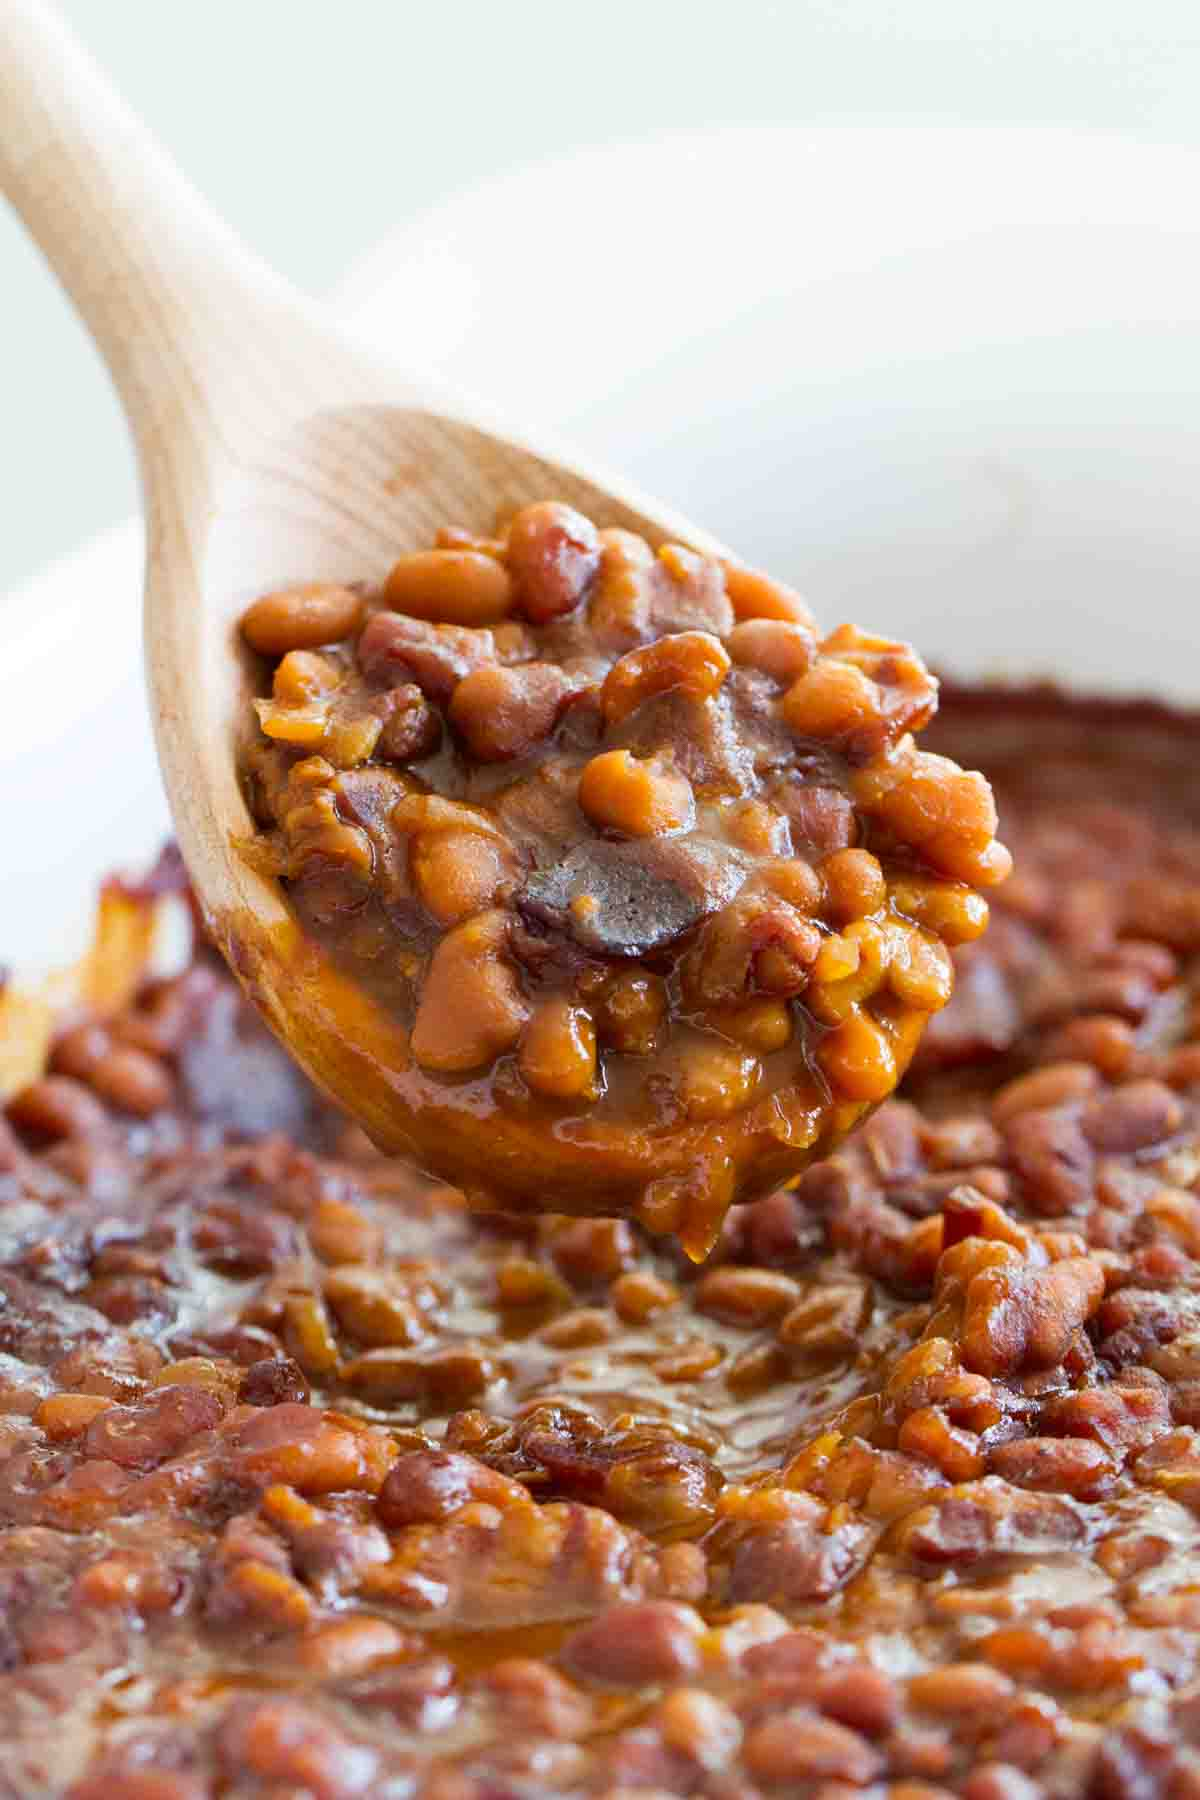 scoop of baked beans with a wooden spoon